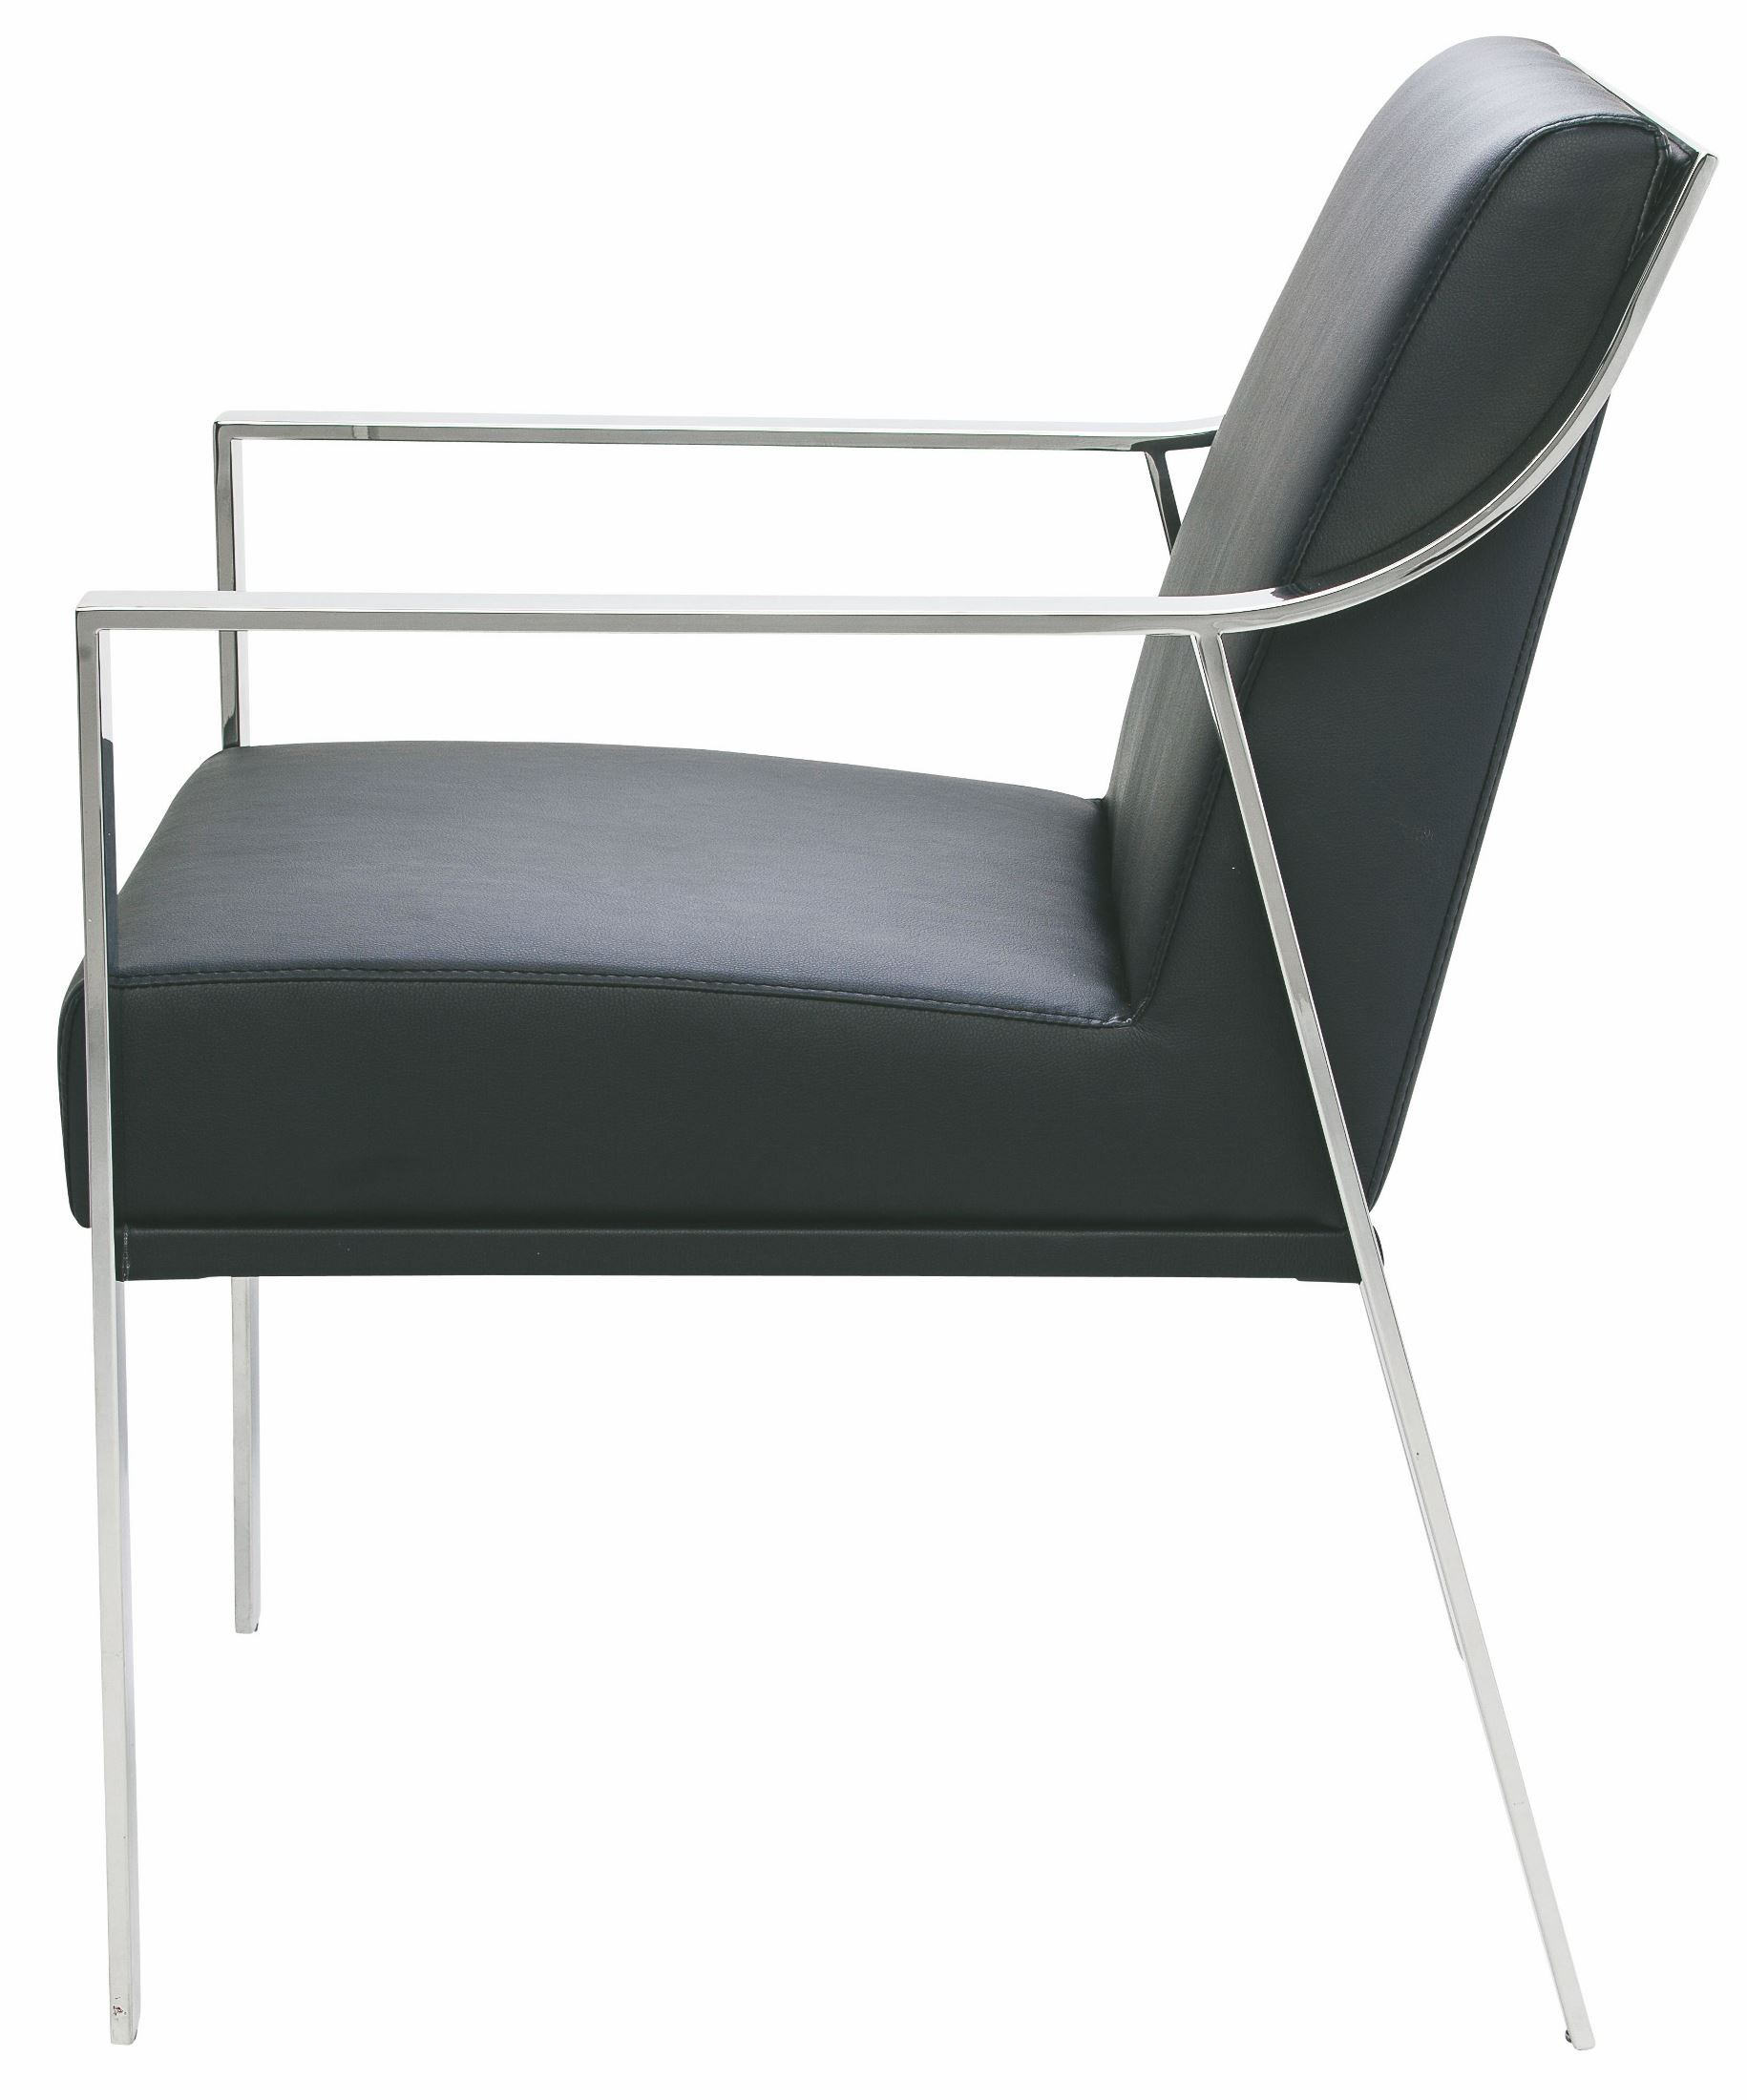 silver metal dining chairs oversized chair with ottoman valentine black naugahyde hgtb247 nuevo